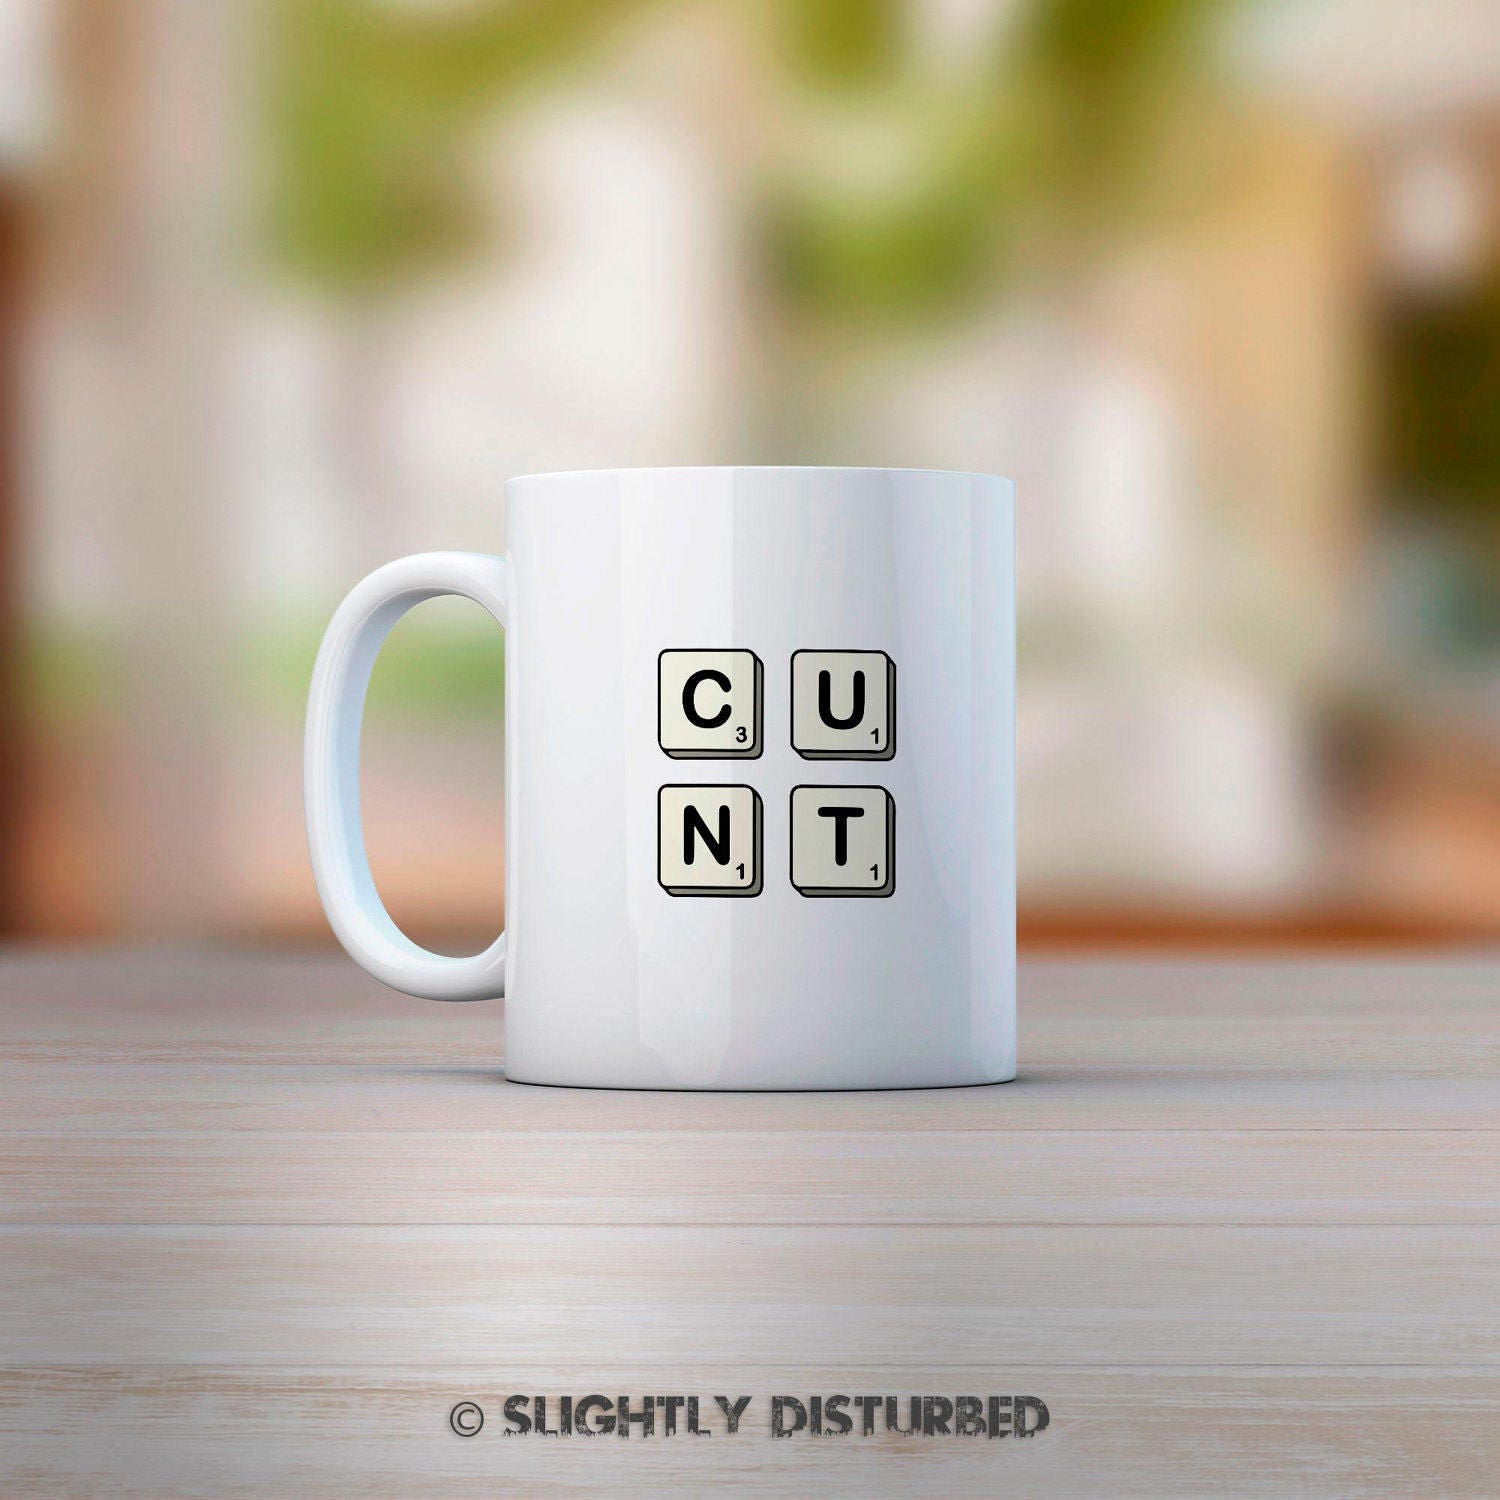 Scrabble tiles cunt mug e1025103938927297m 899 newhighlyp scrabble tiles cunt mug dailygadgetfo Image collections